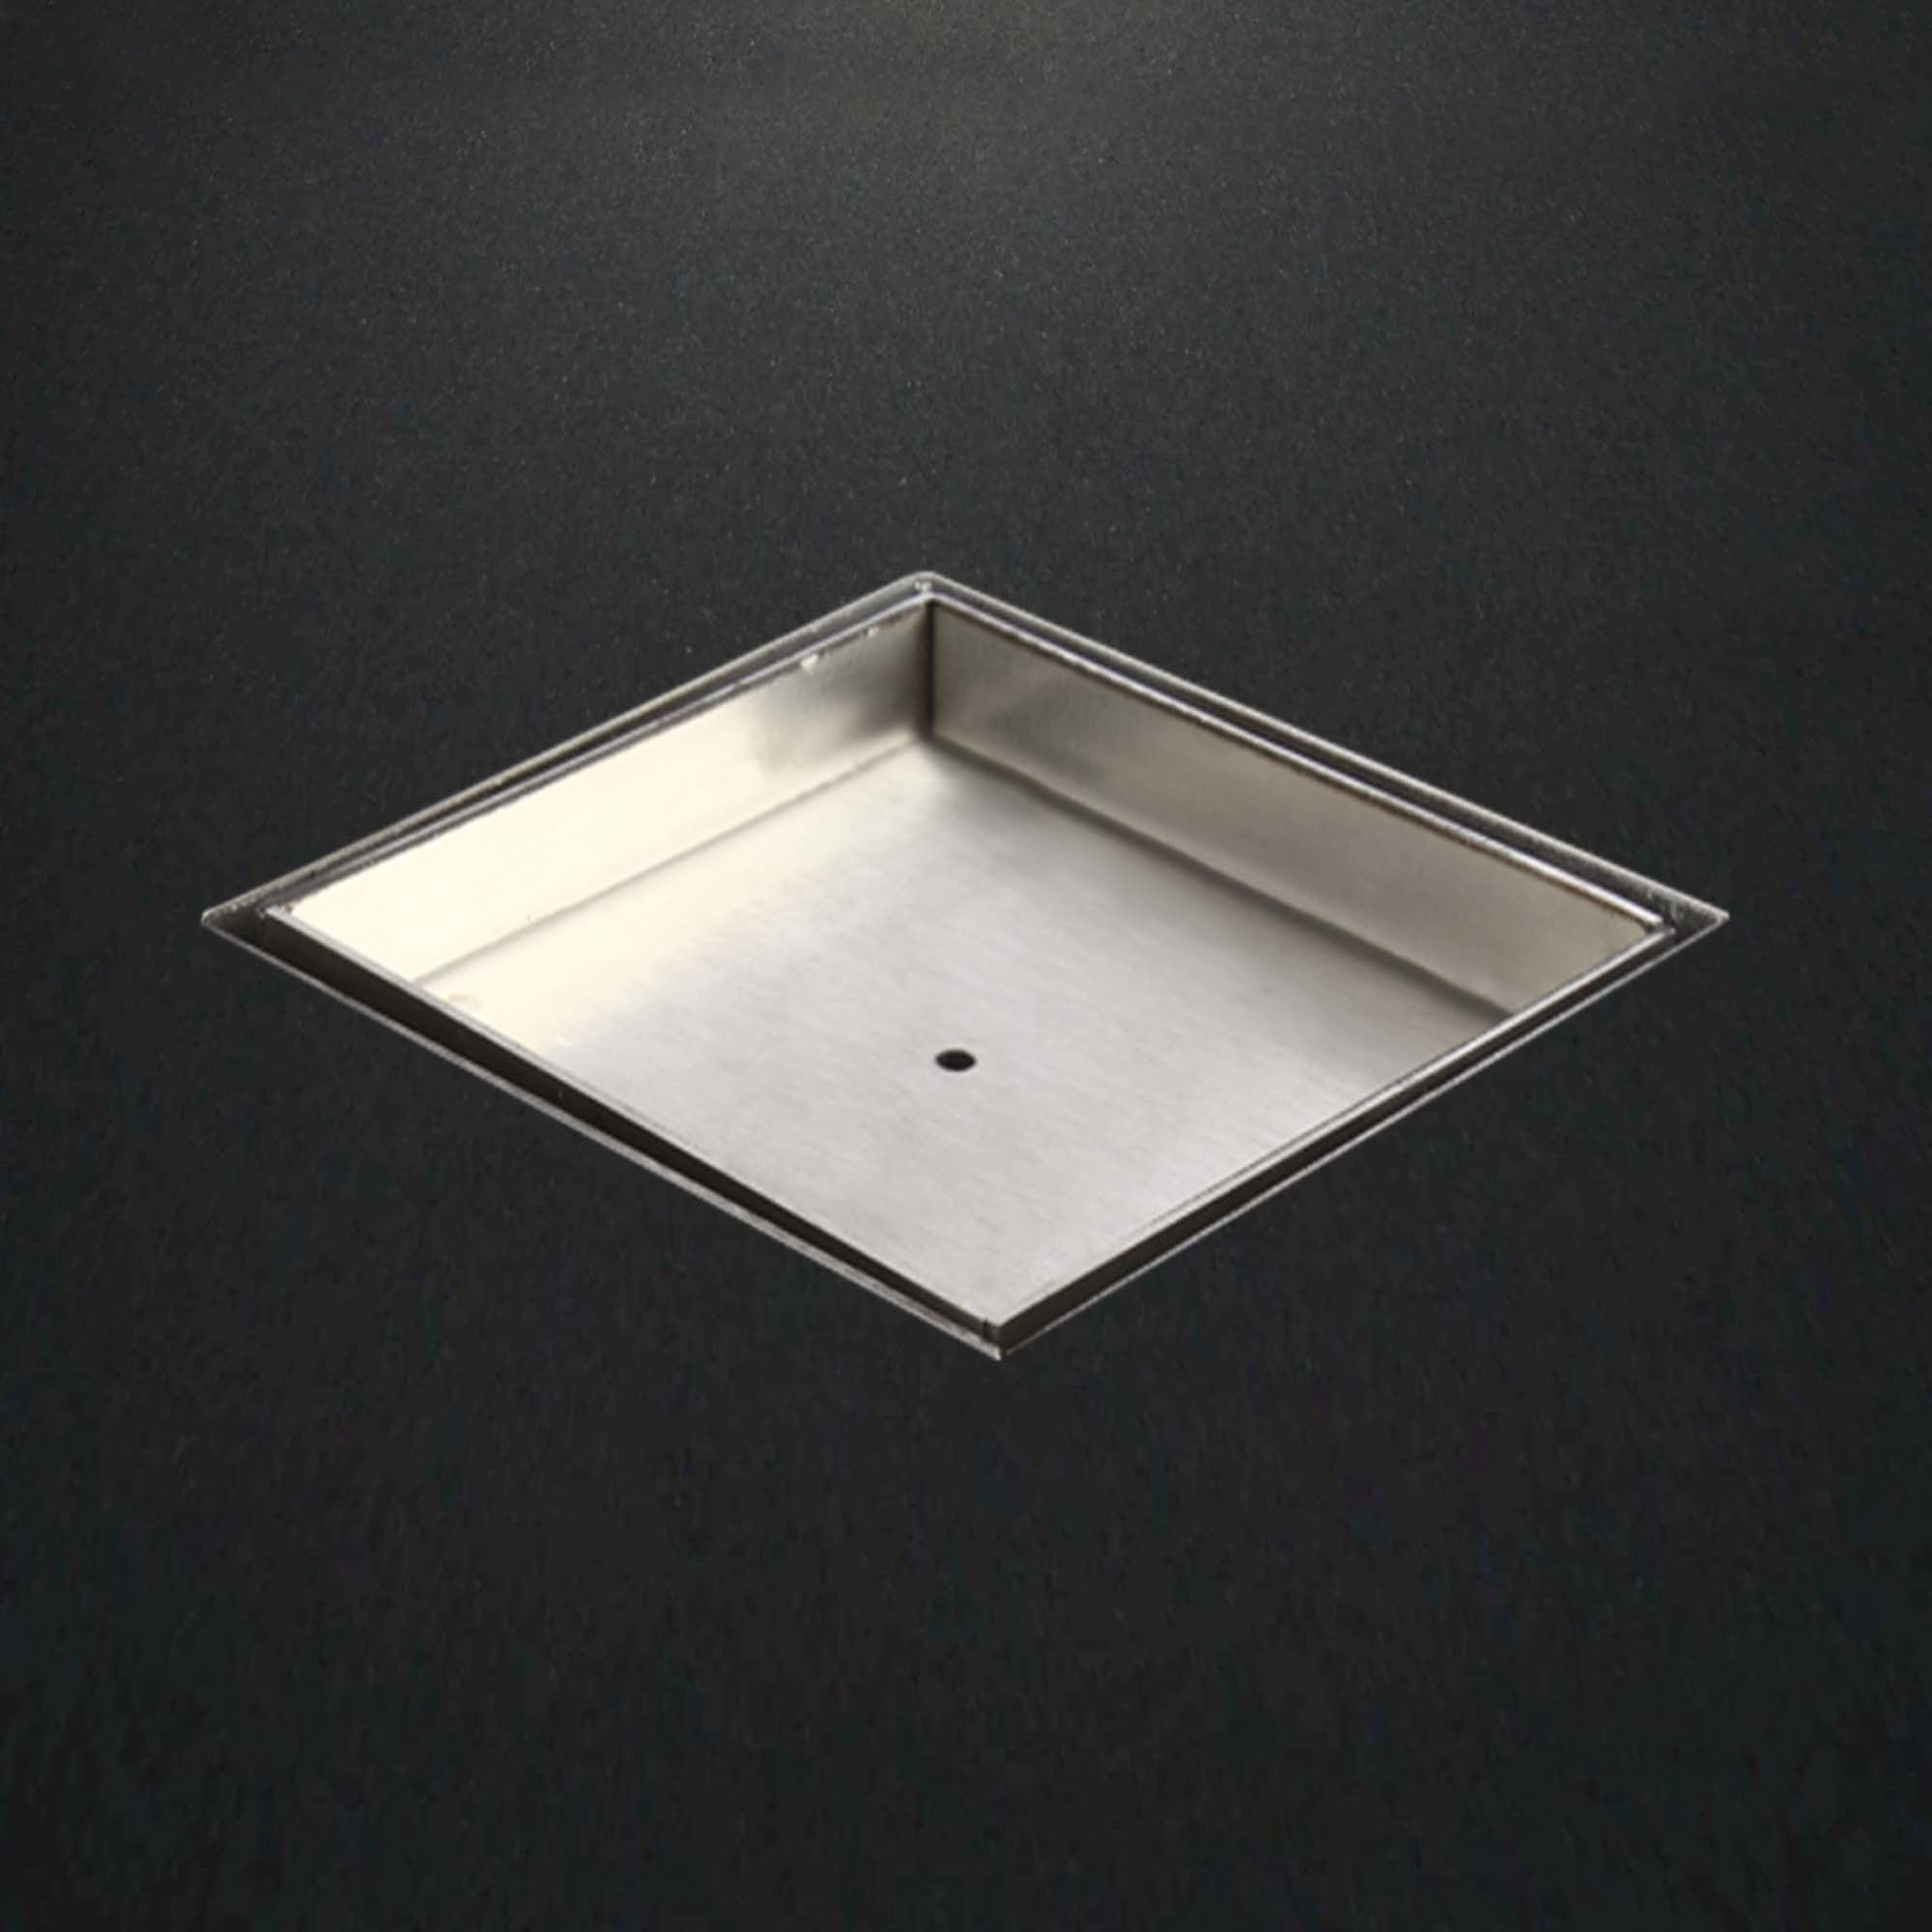 Square Straight Coler Tile Drain